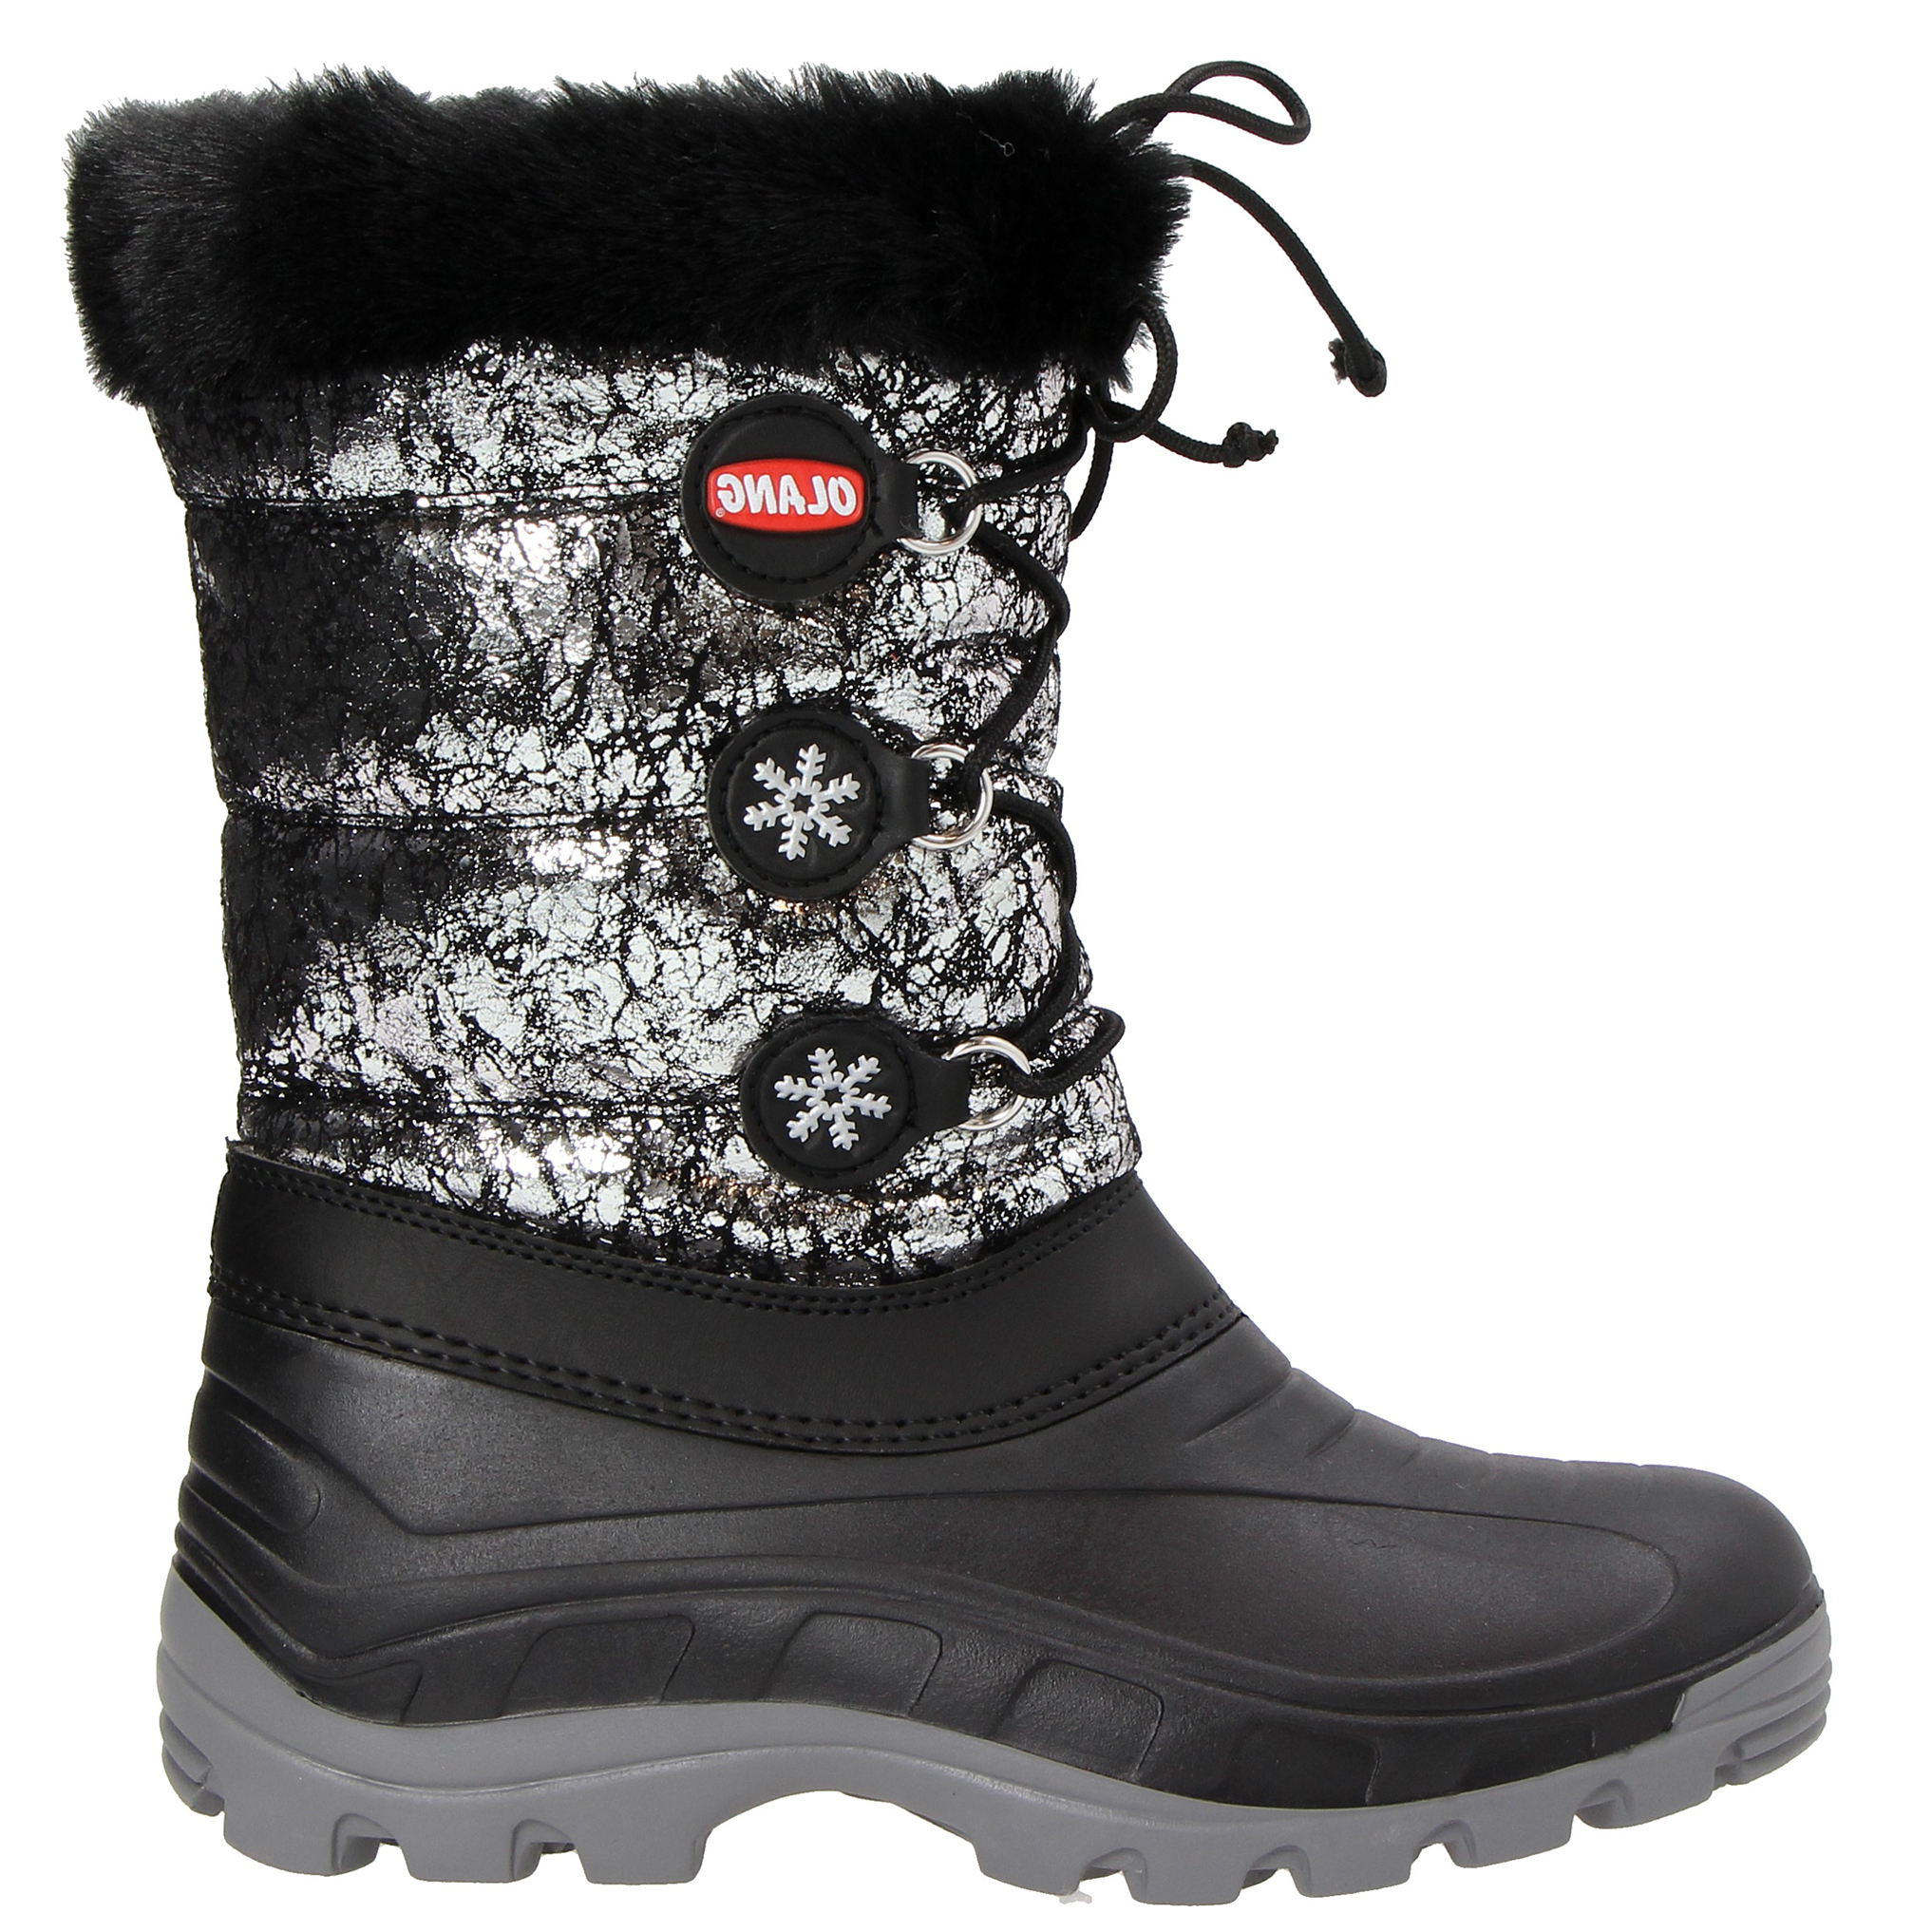 OLANG PATTY LUX WOMAN APRES SKI SHOES-Anthracite